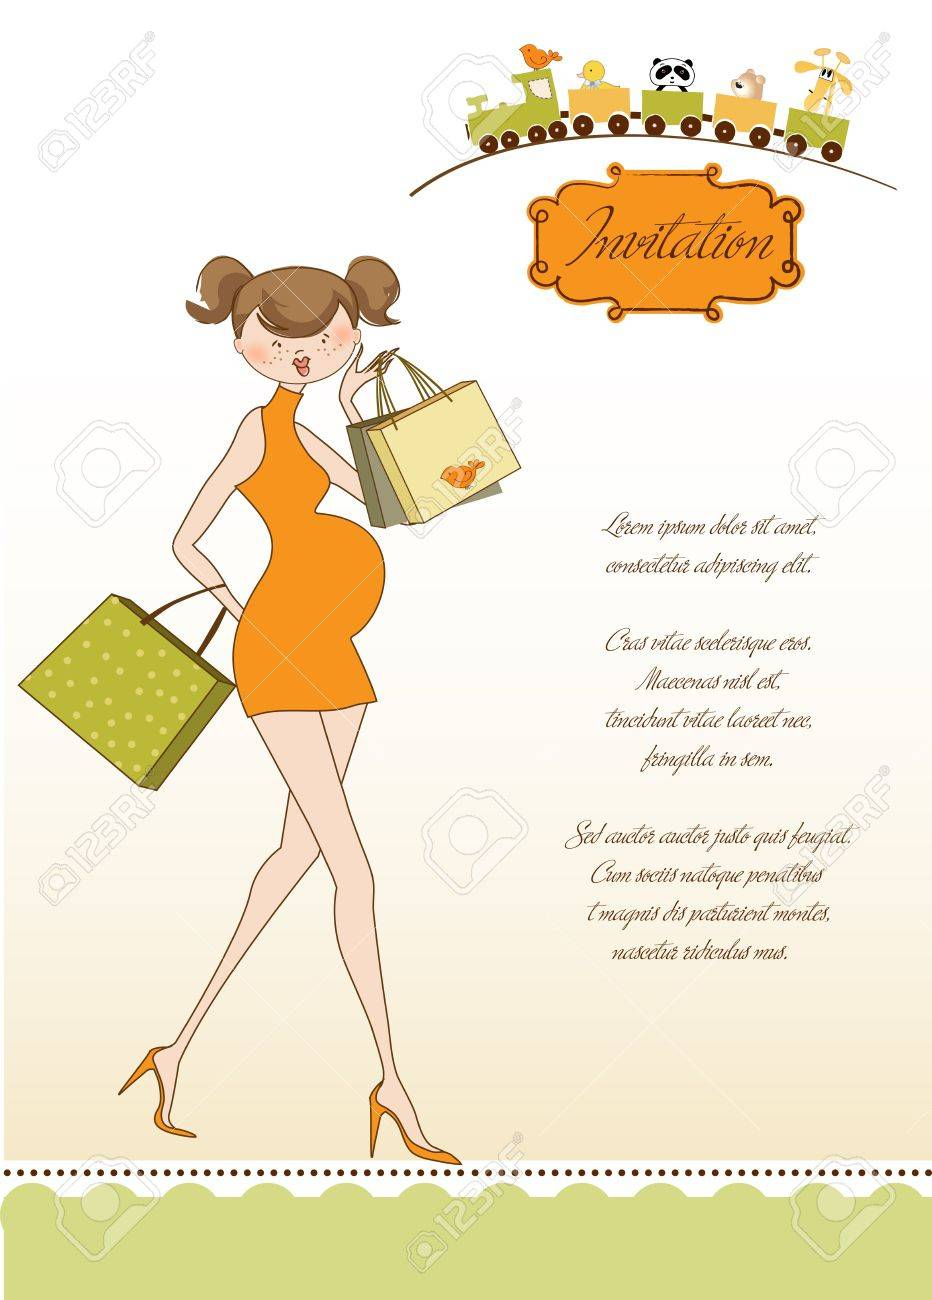 new baby shower invitation with pregnant expectant mother Stock Vector - 10586930